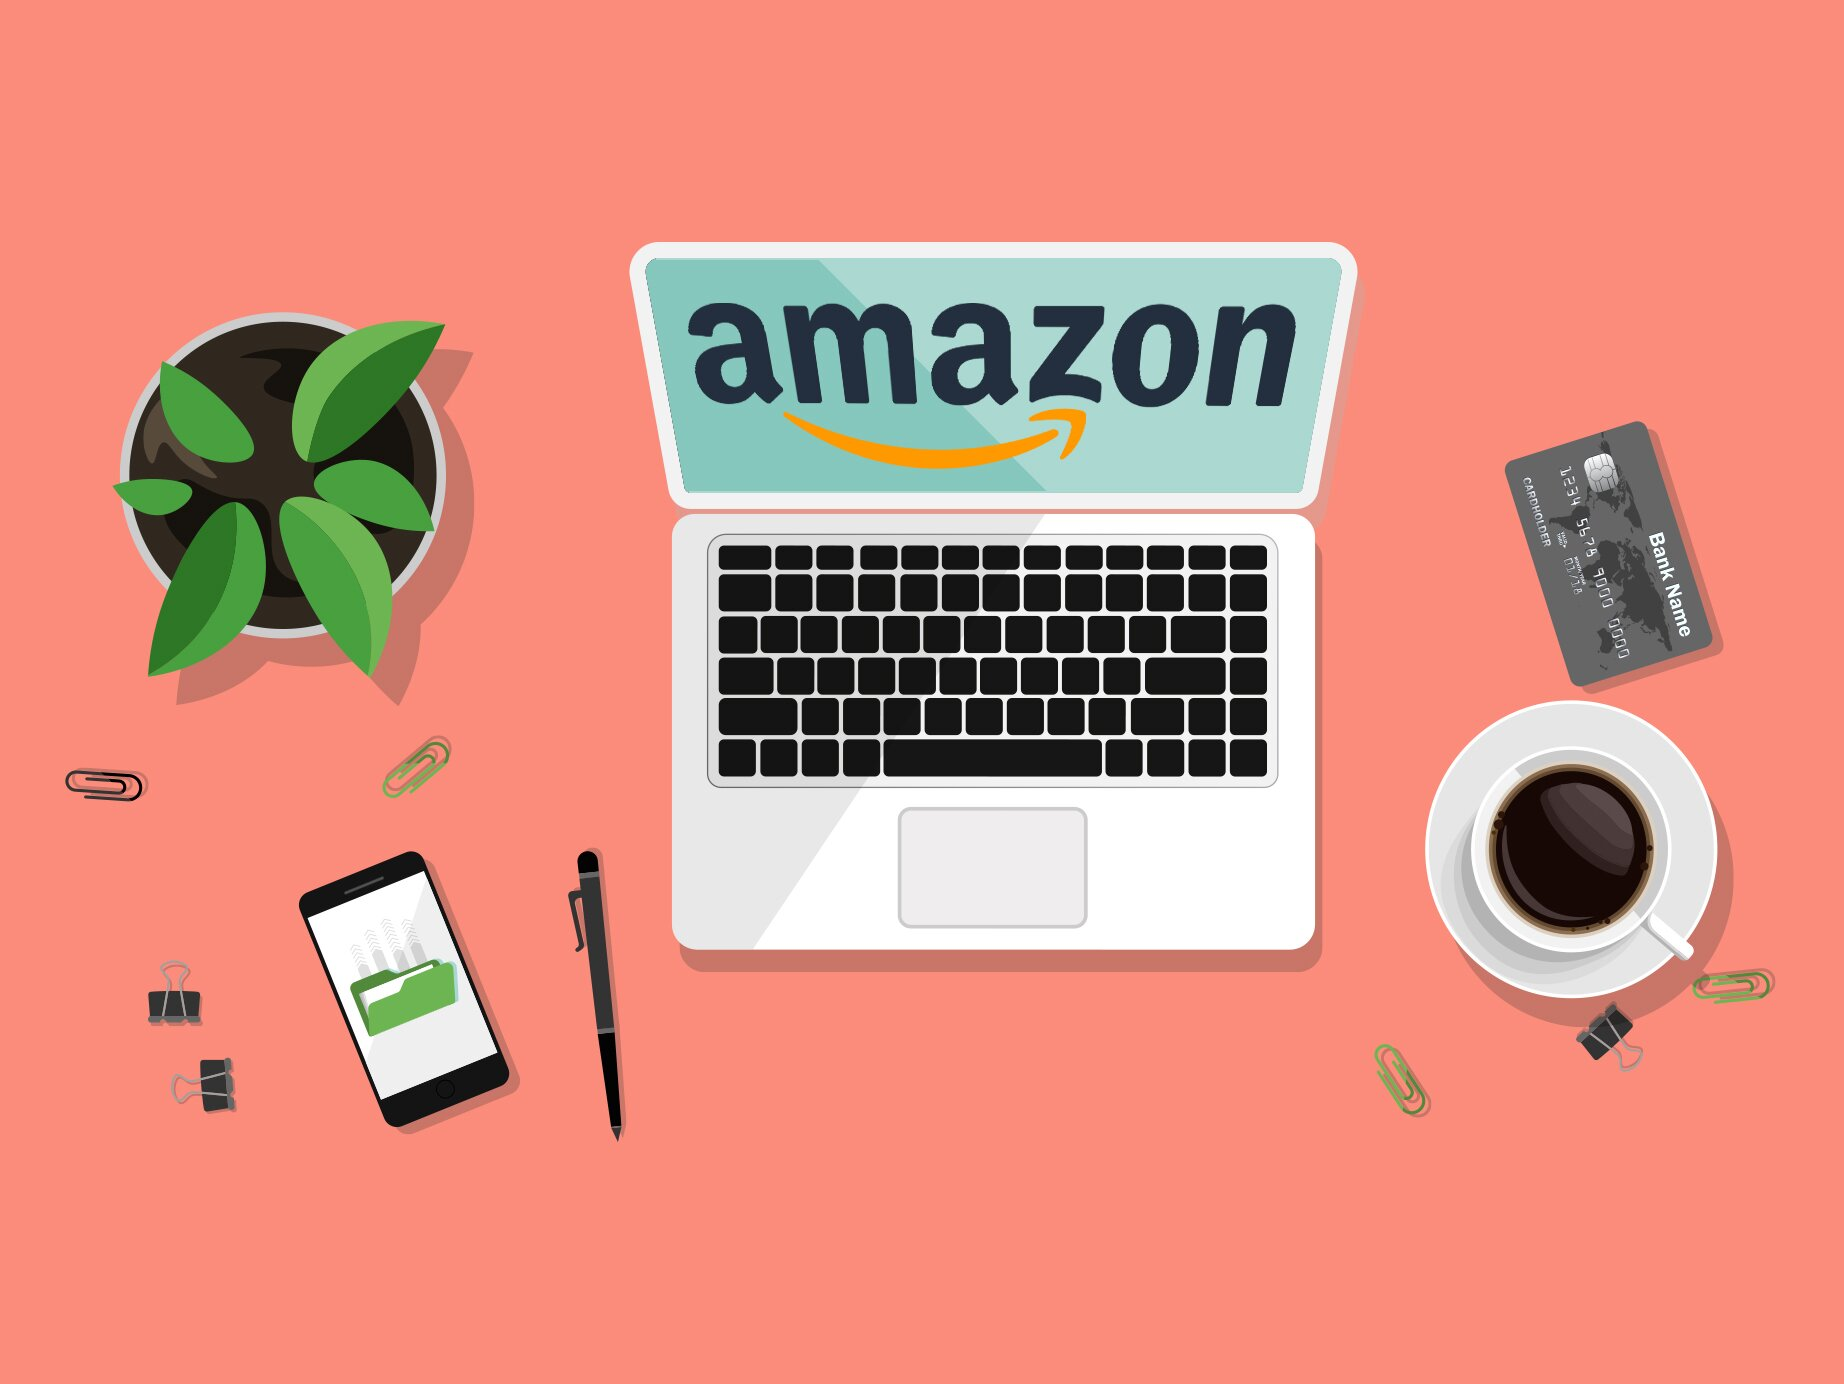 15 Best Amazon Deals and Shopping Tips | Real Simple